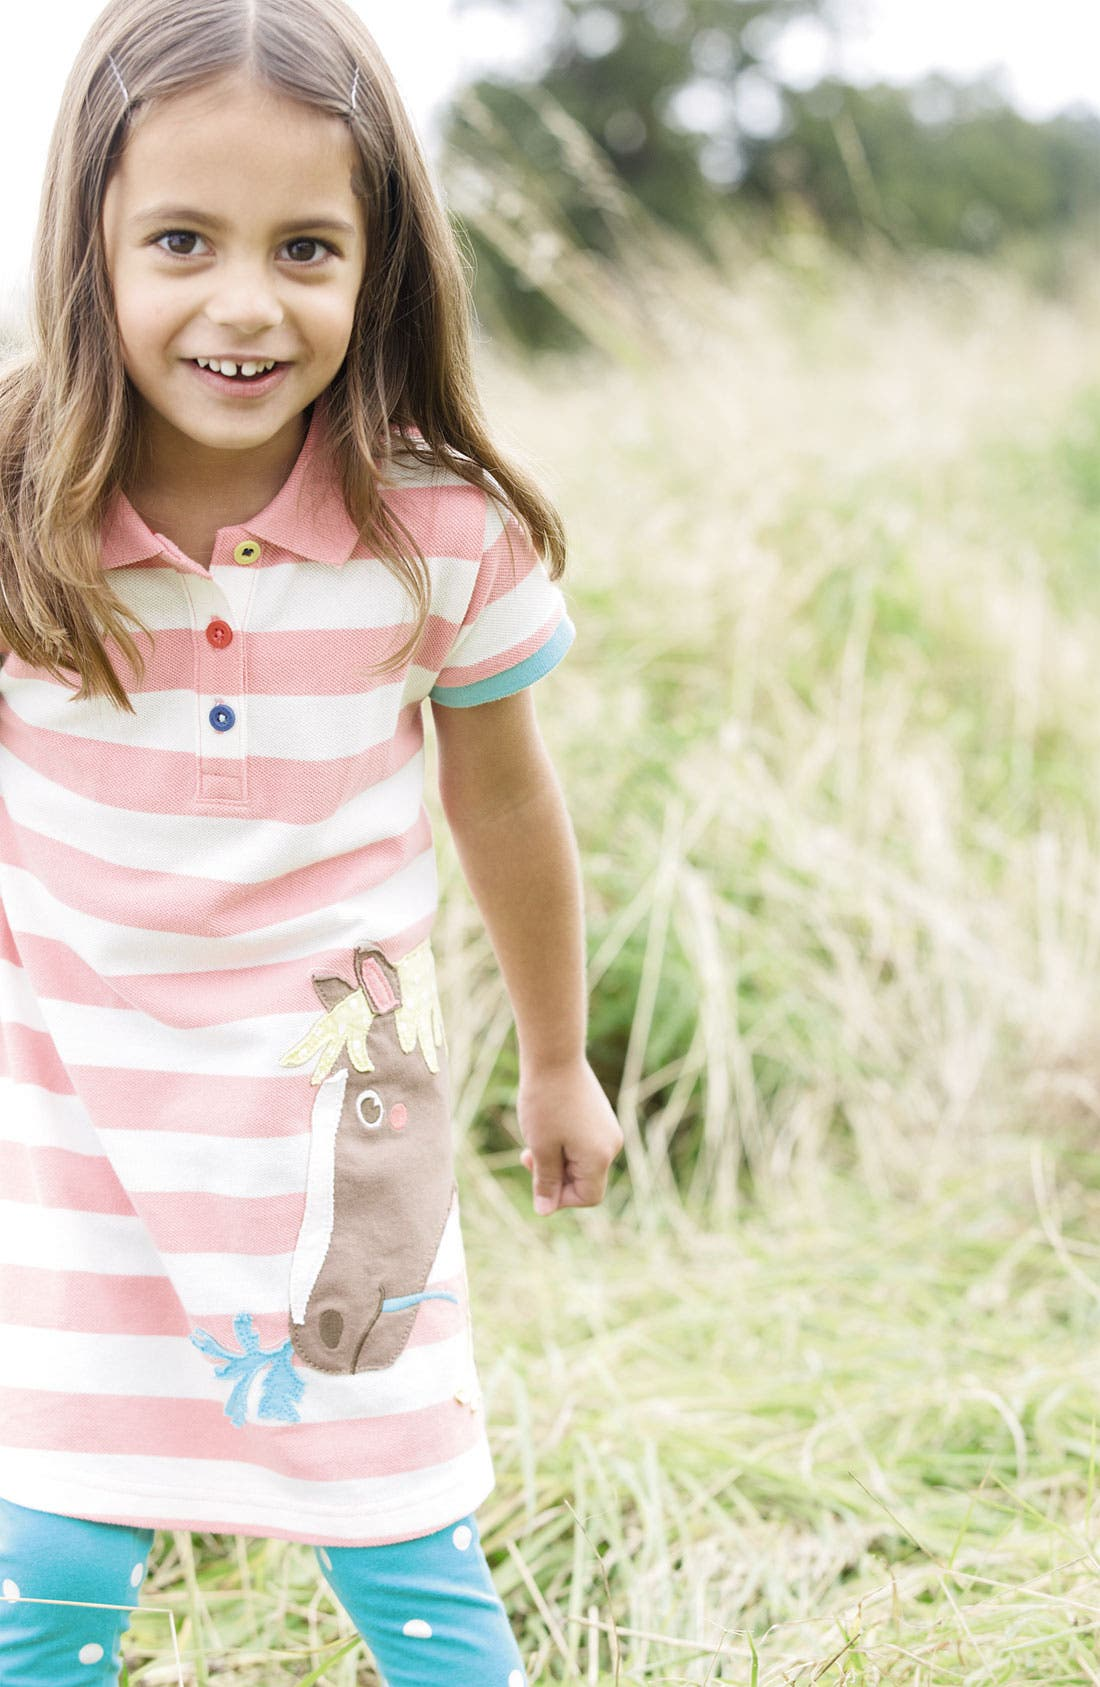 Alternate Image 2  - Mini Boden 'Fun' Appliqué Polo Dress (Toddler, Little Girls & Big Girls)